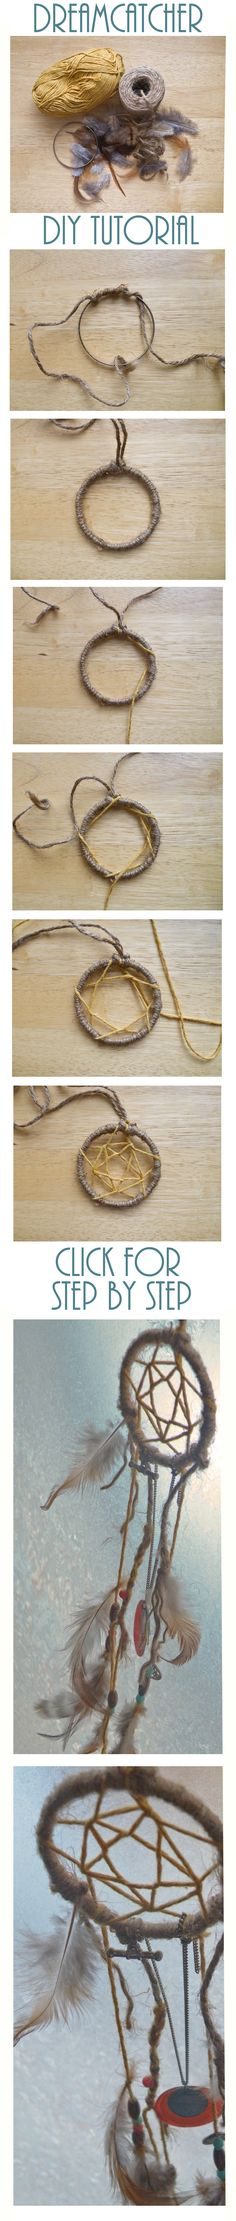 DREAM CATCHER -earthier design *a star in a star in a star...